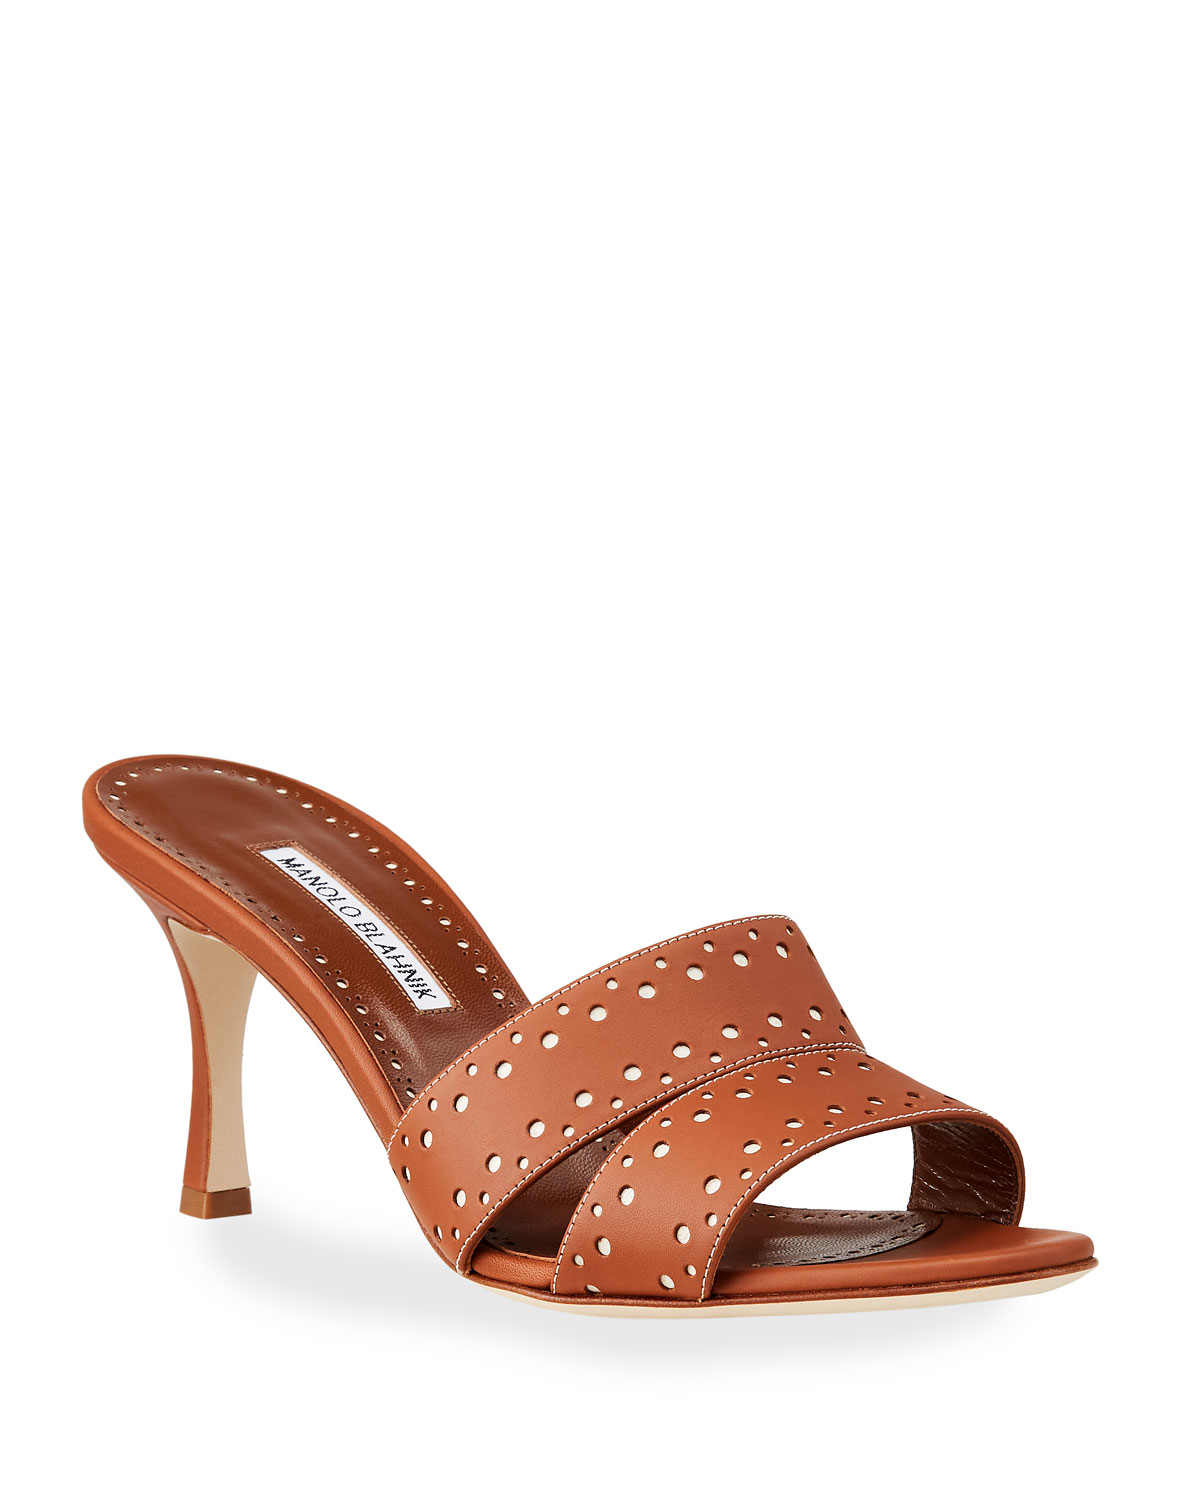 Manolo Blahnik Jacobro Cutout Leather Mid-Heel Sandals